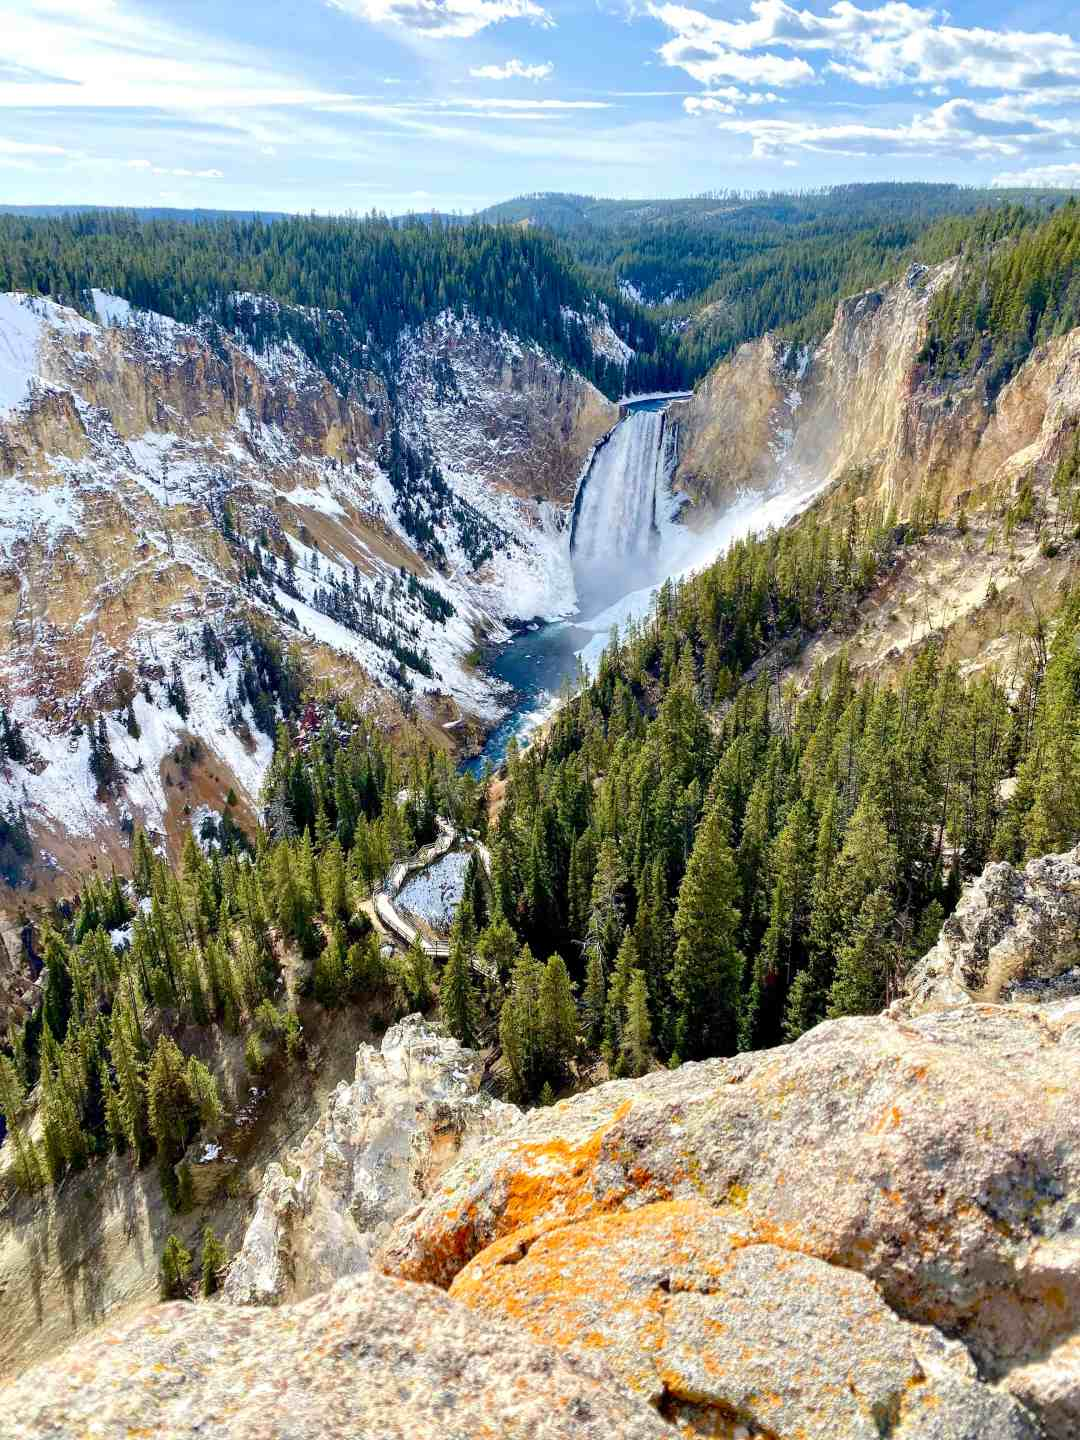 Lower Falls in Yellowstone National Park the Grand Canyon of Yellowstone